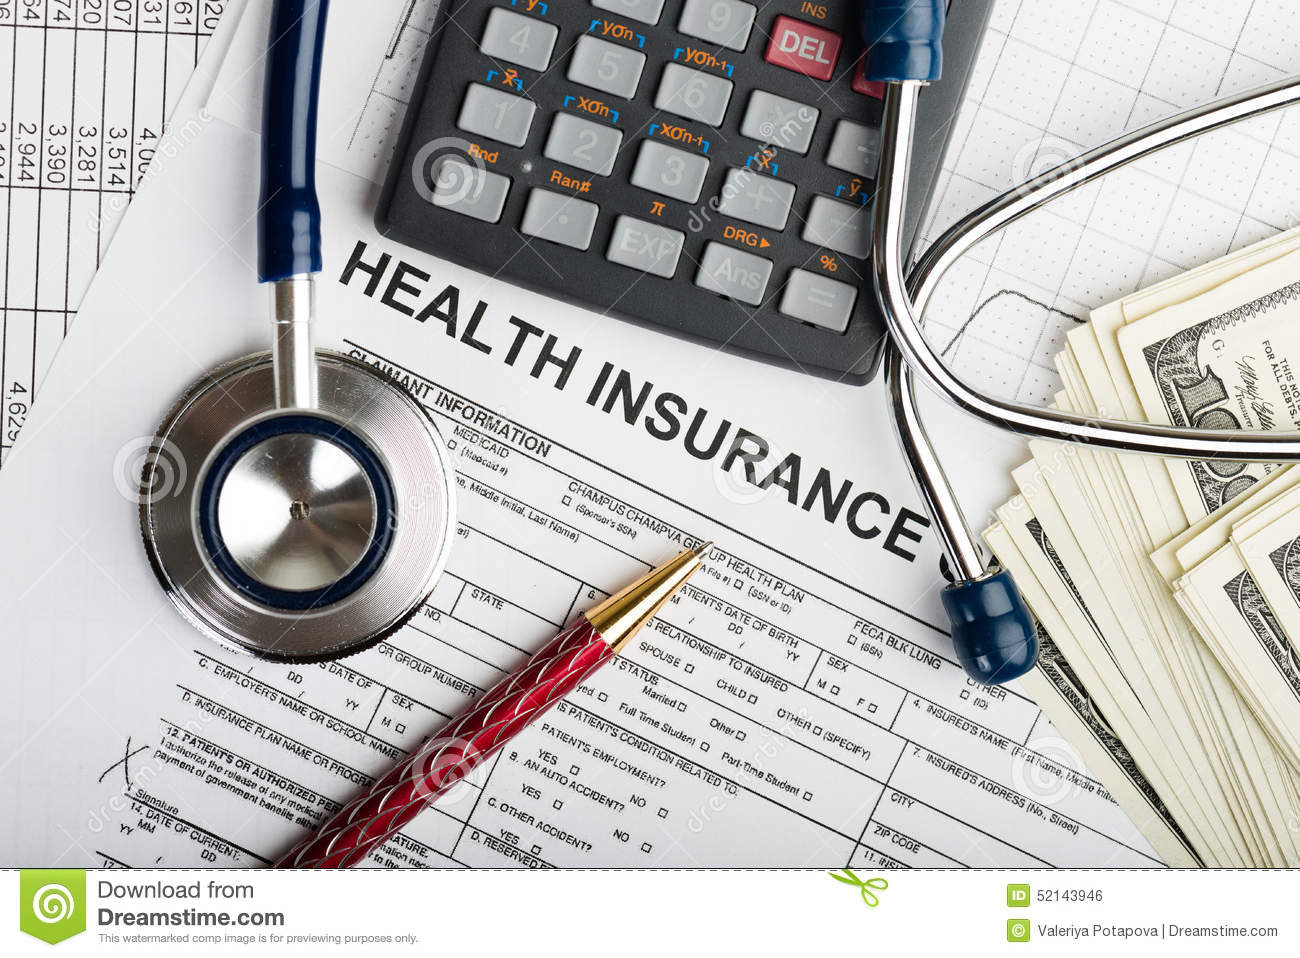 how to cancel cost u less insurance